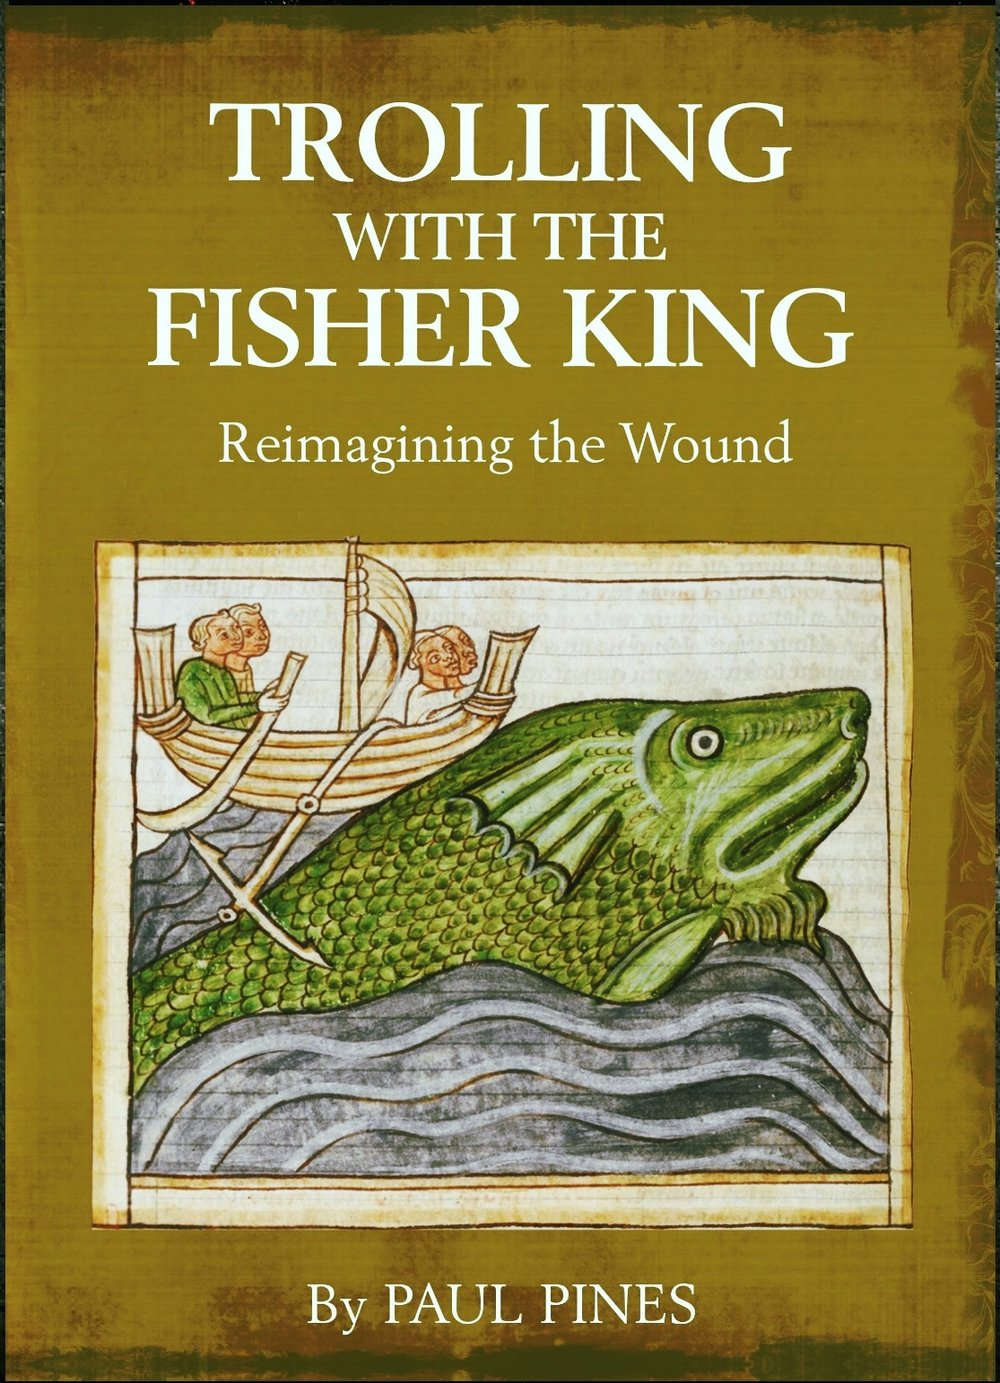 Trolling-with-the-Fisher-King-Book Cover.jpg